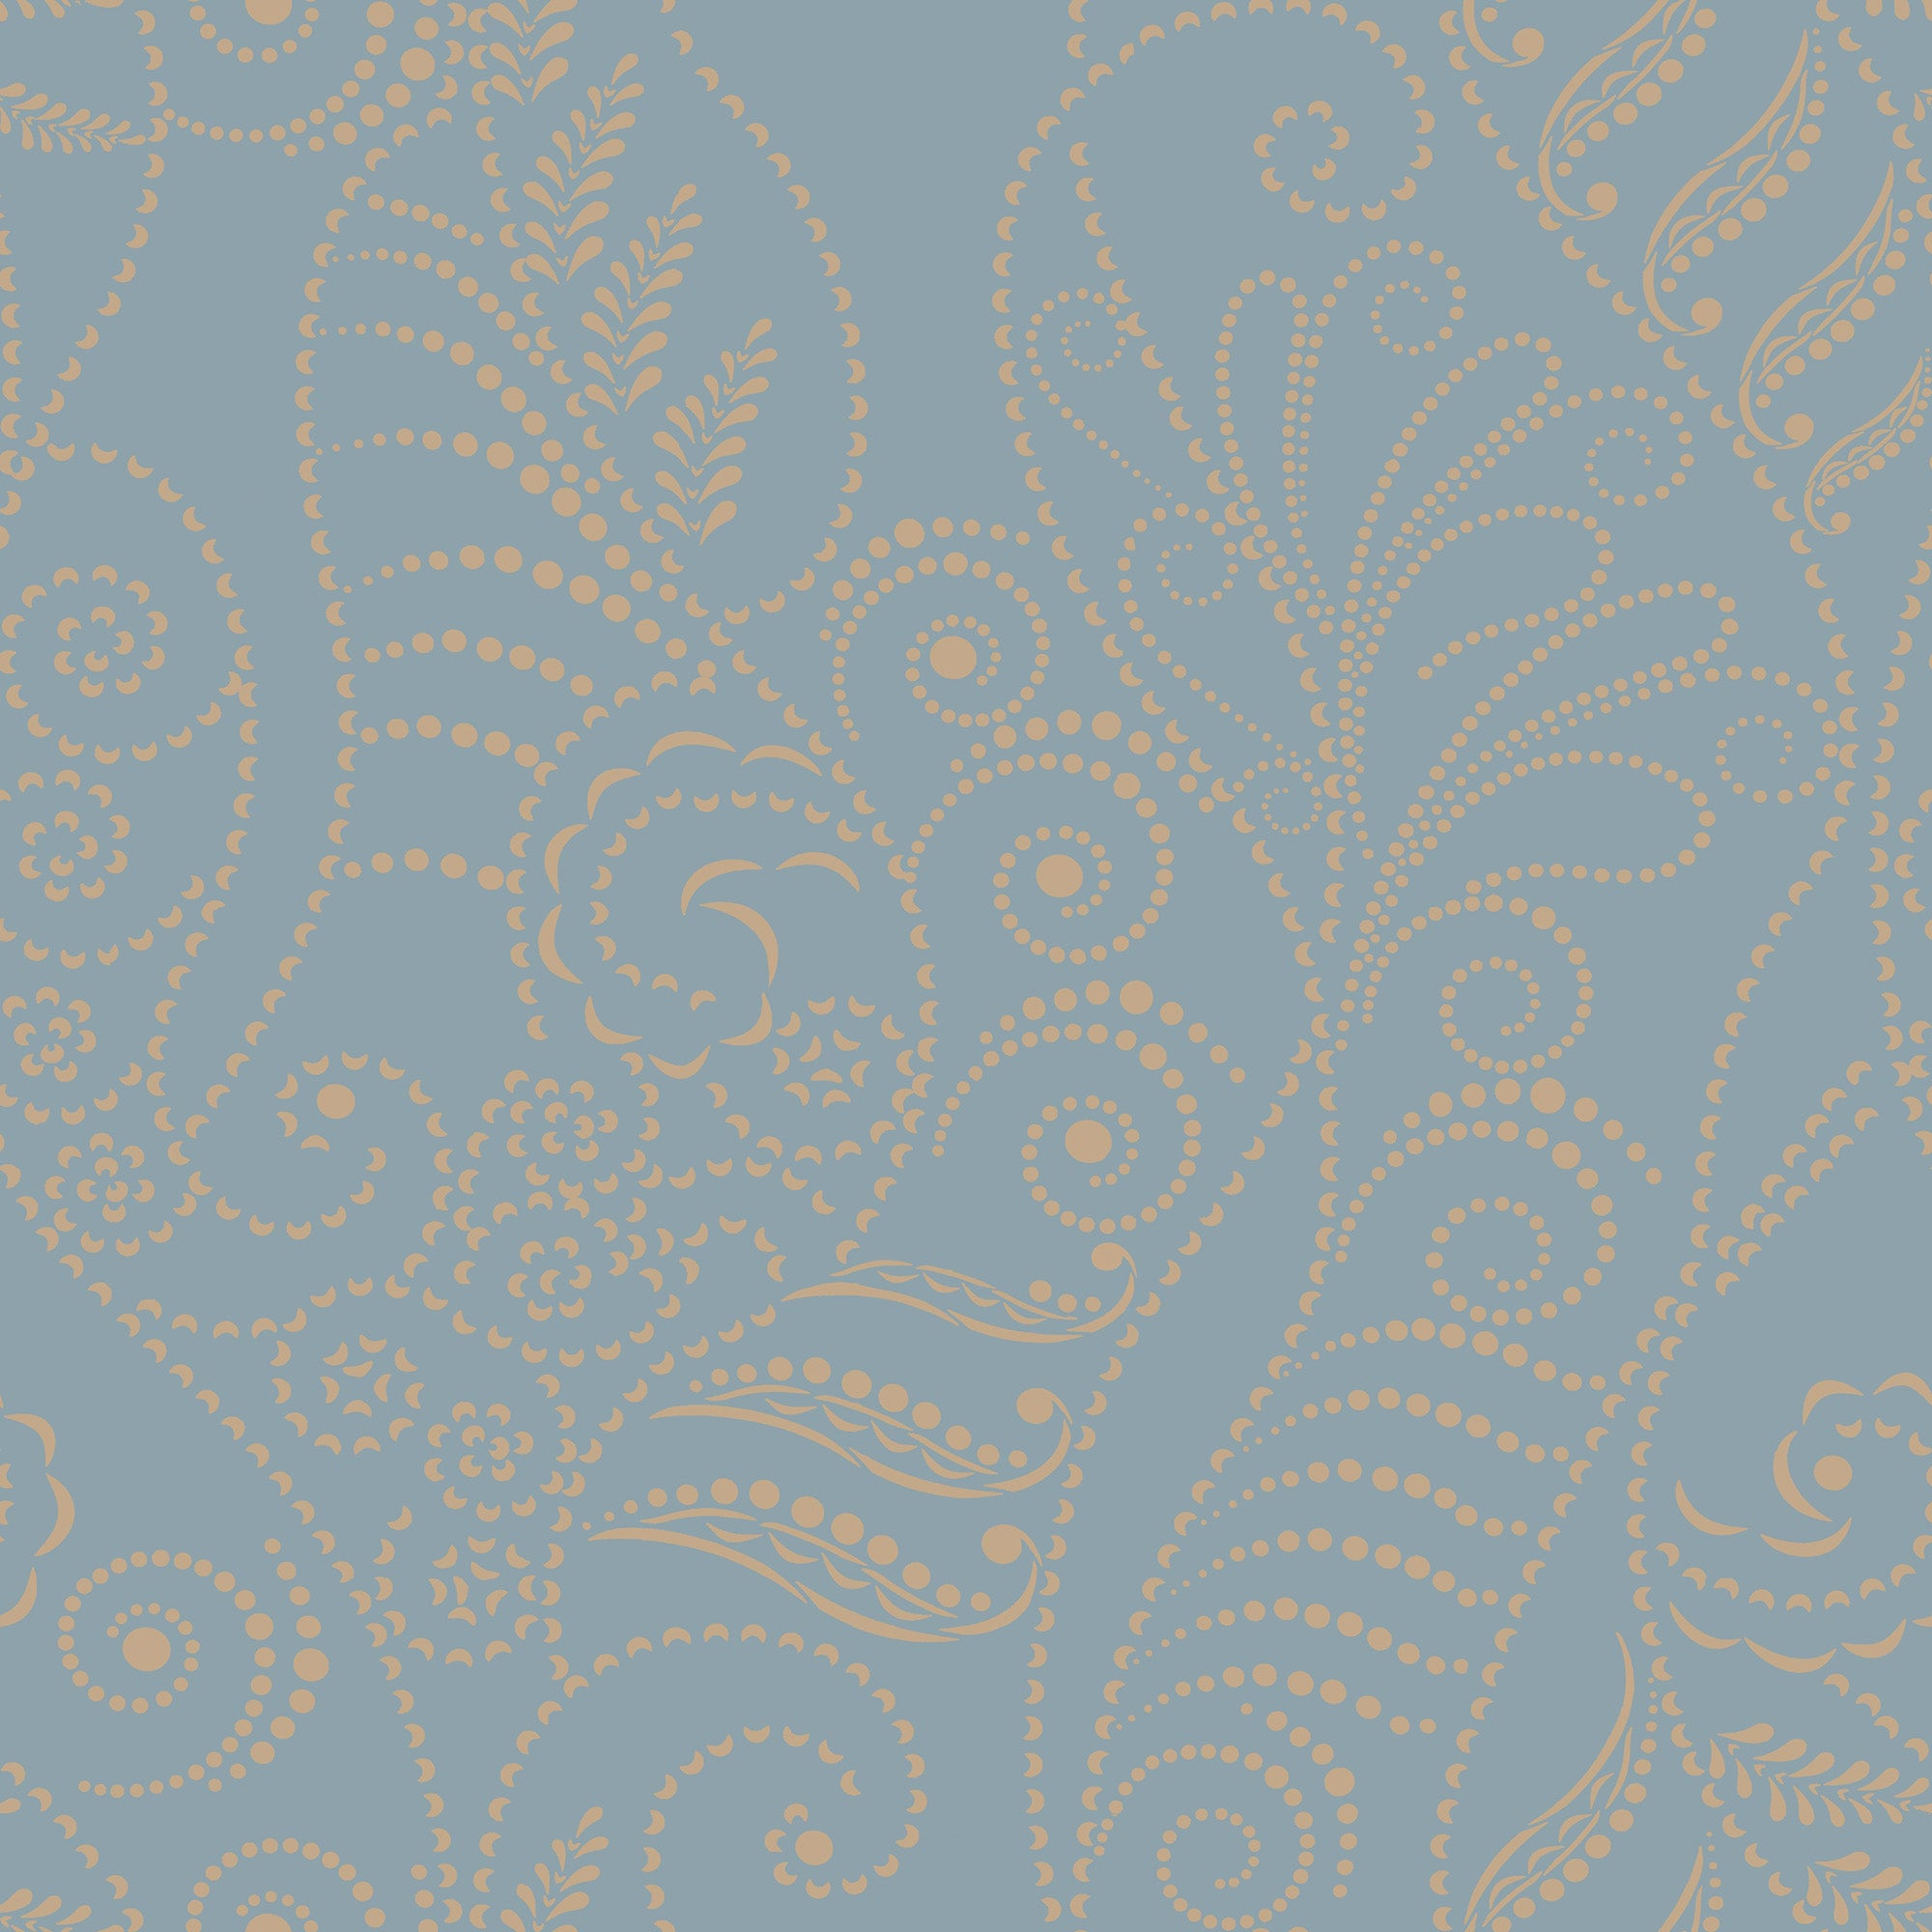 Candice Olson Modern Fern Wallpaper - Gold On Denim